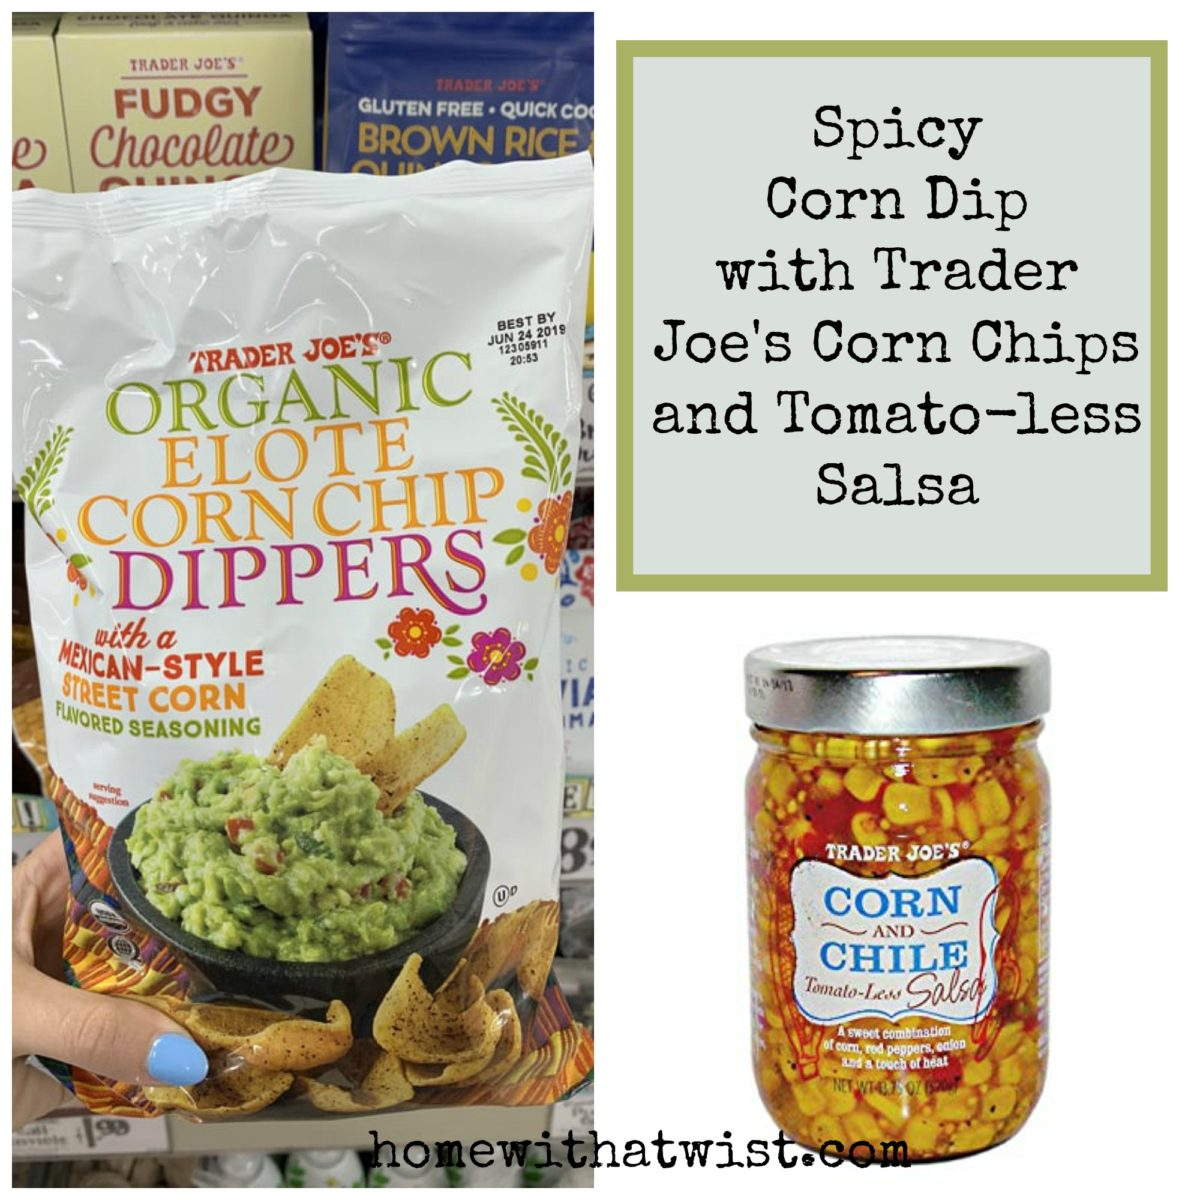 Spicy Corn Dip and Trader Joe's Organic Elote Corn Chip Dippers